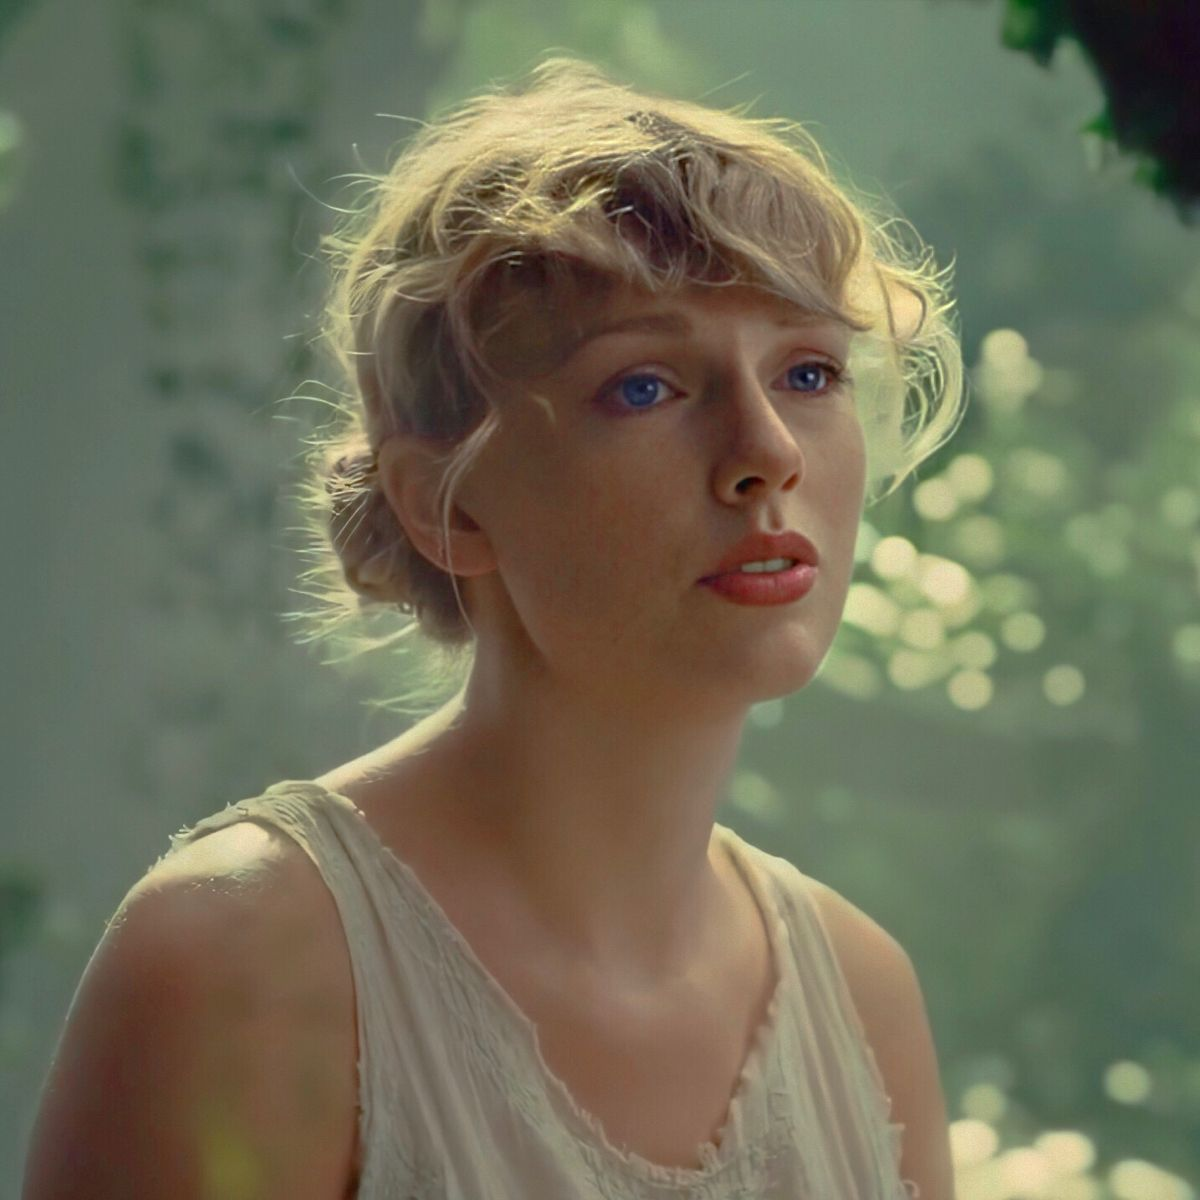 𝖢𝖺𝗋𝖽𝗂𝗀𝖺𝗇 | Taylor swift pictures, Taylor swift icon ...